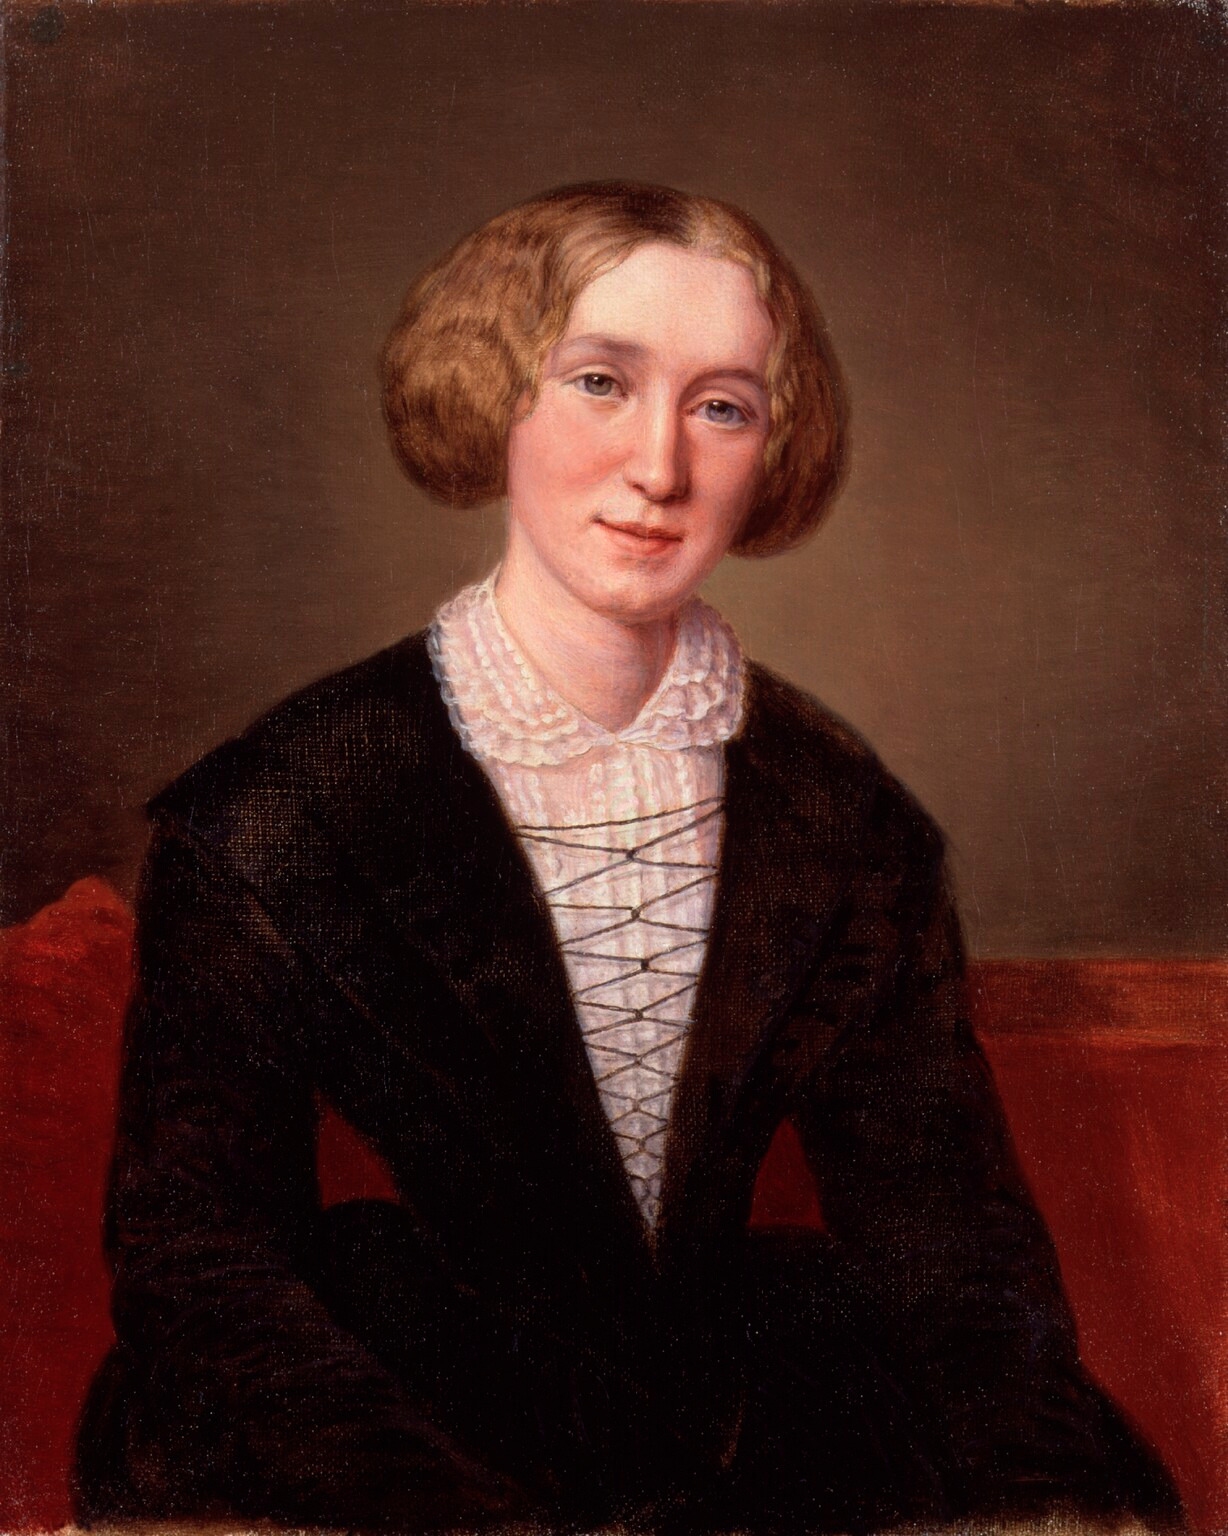 George Eliot aged 30, by the Swiss artist Alexandre-Louis-François d'Albert-Durade | Wikimedia Commons